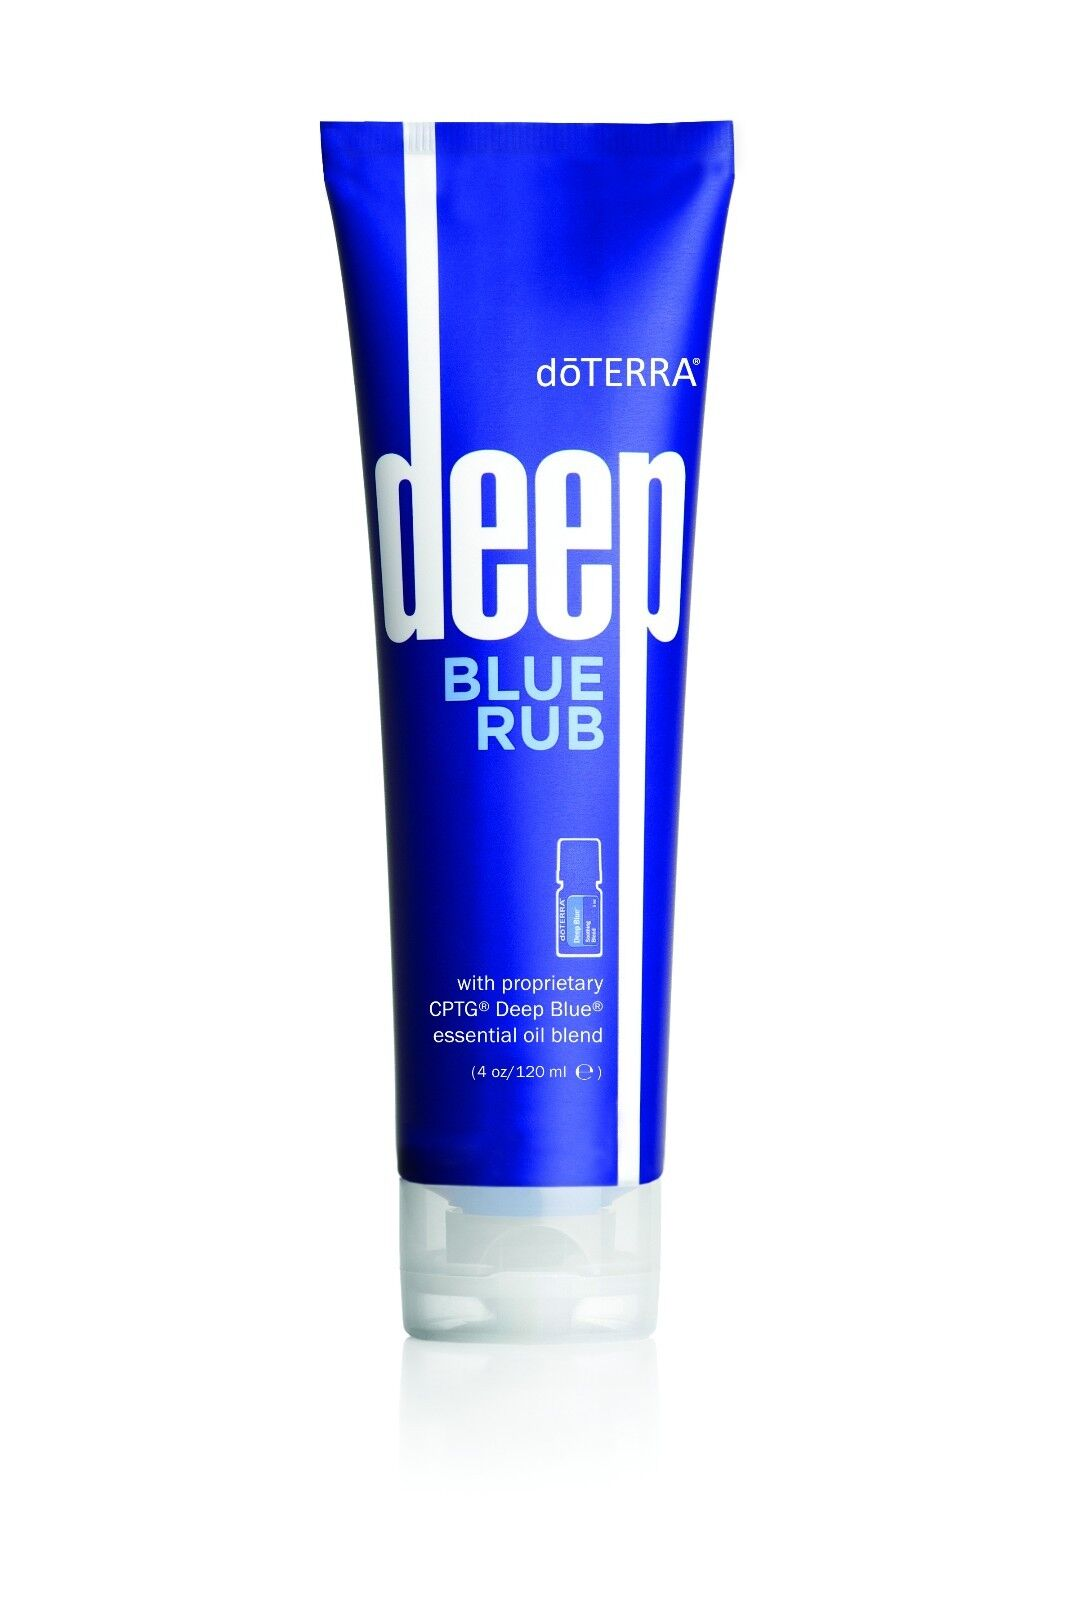 BRAND NEW doTERRA Deep Blue Rub 4 oz tube - EXP: 01/2021 - Fast FREE Shipping!